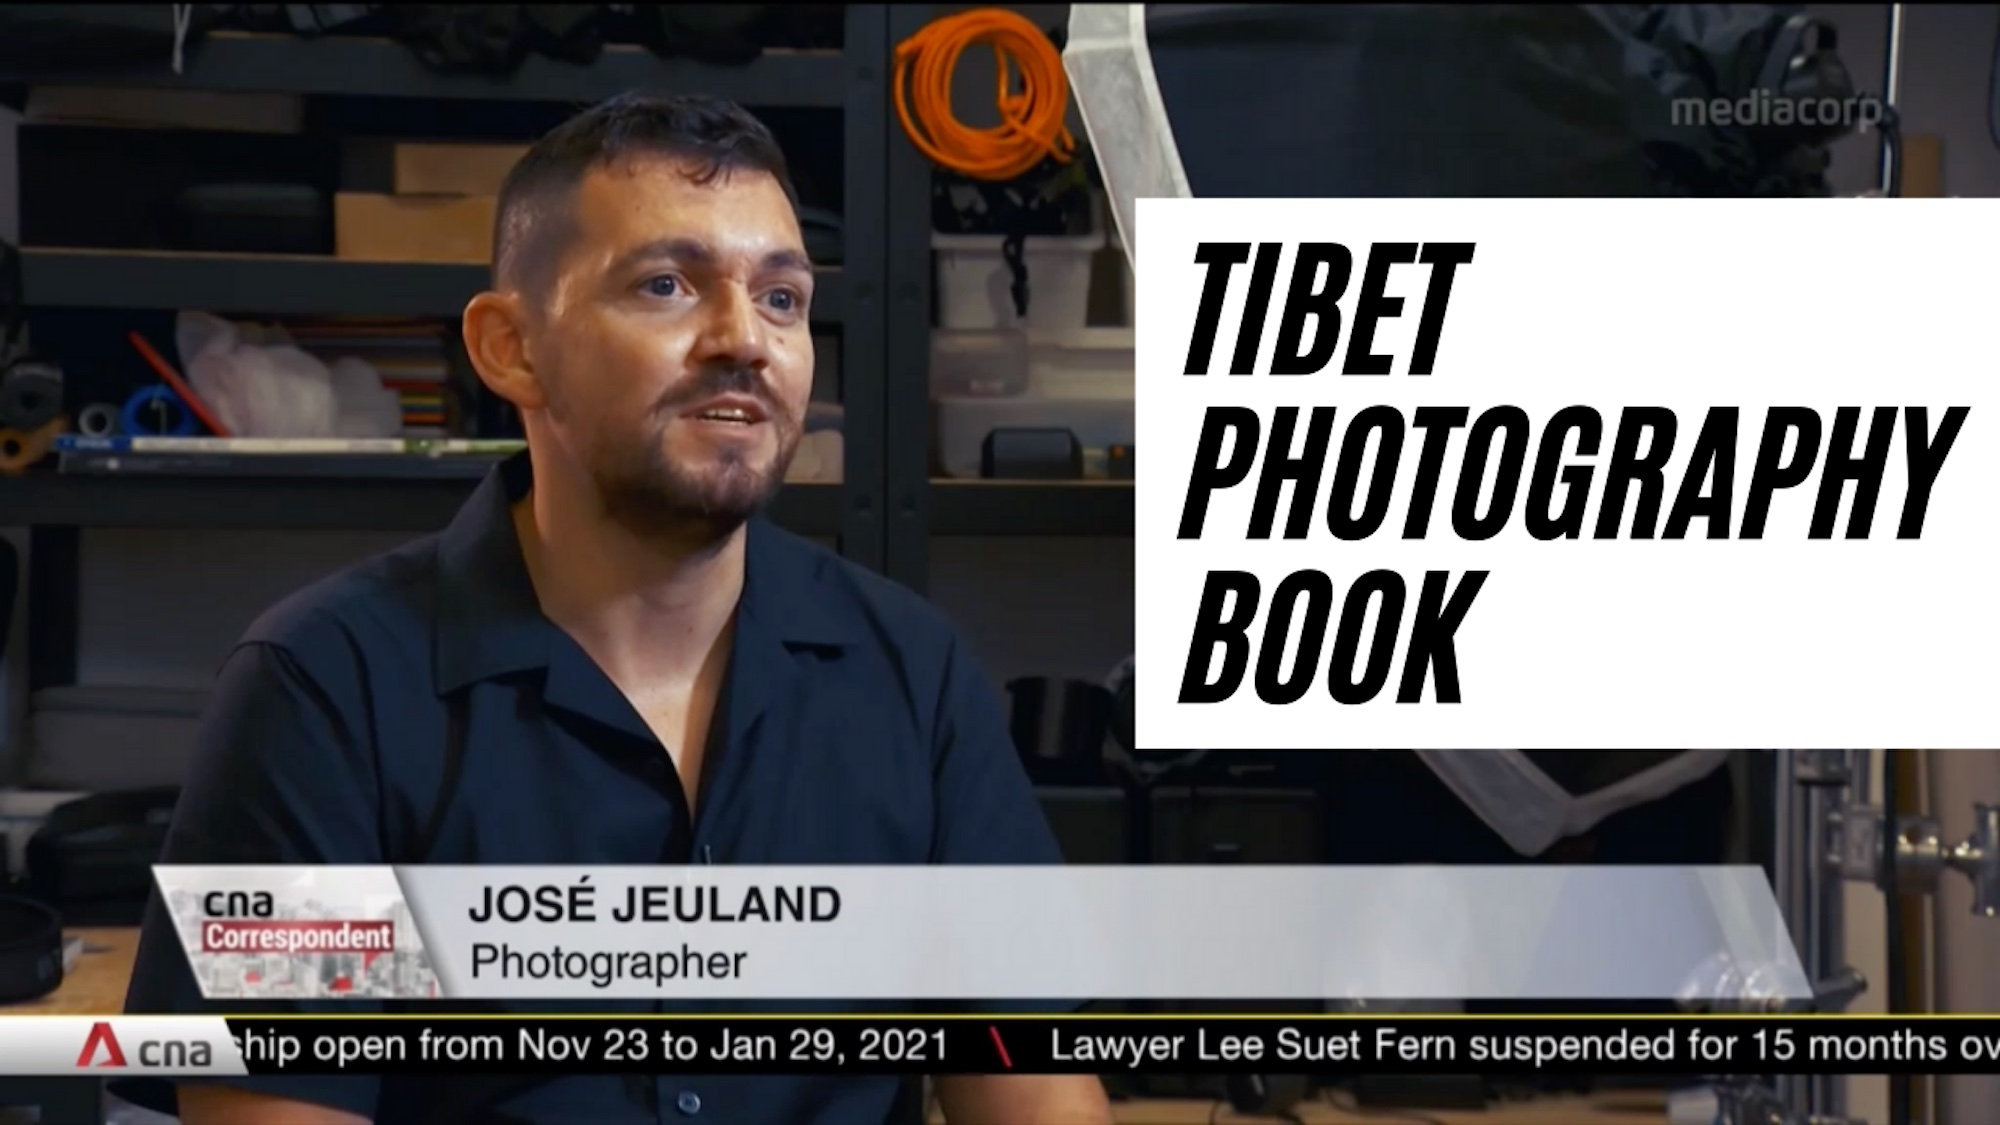 Photography book TIBET featured in CNA